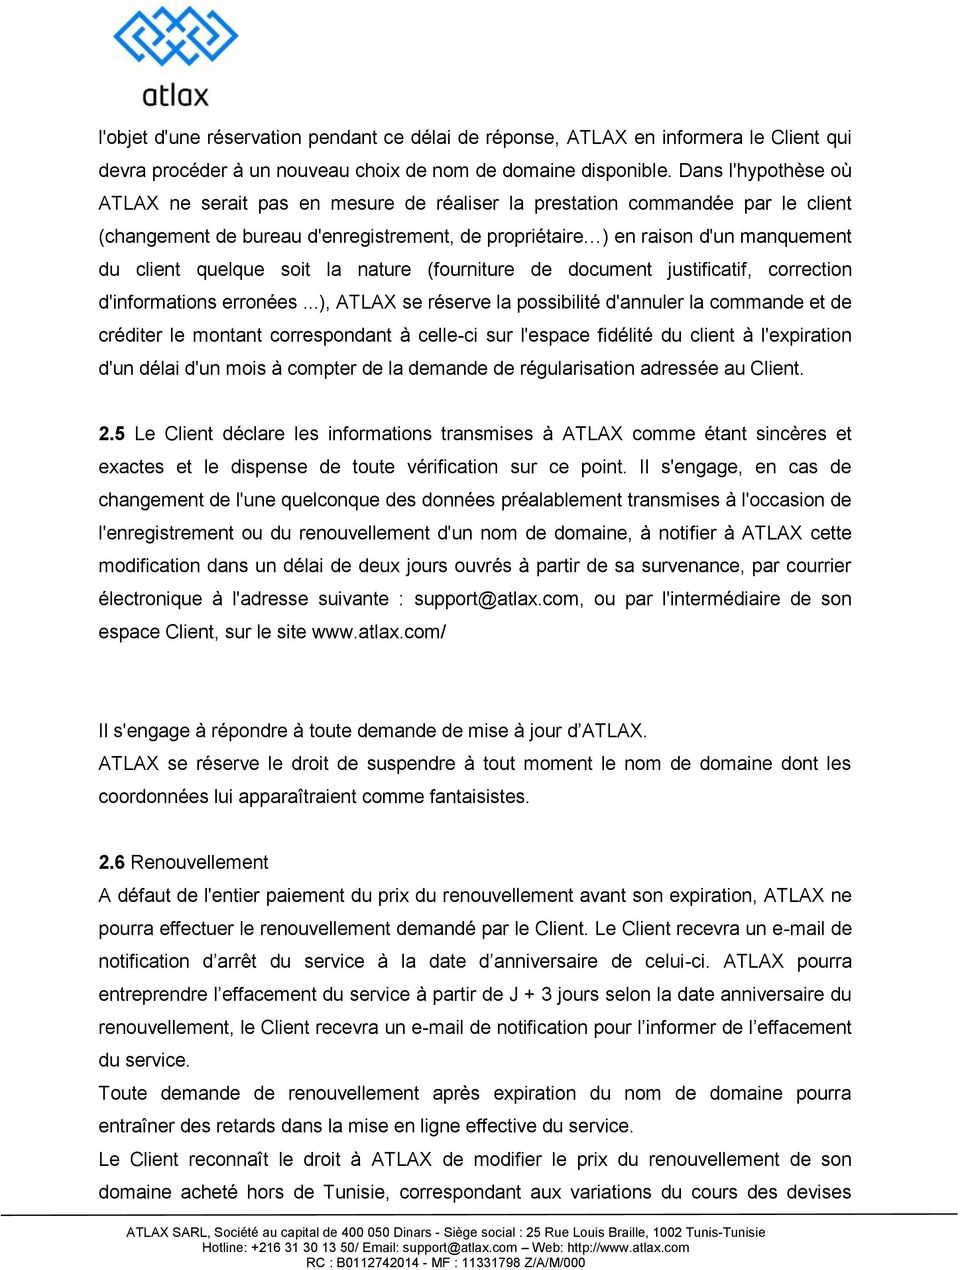 quelque soit la nature (fourniture de document justificatif, correction d'informations erronées.